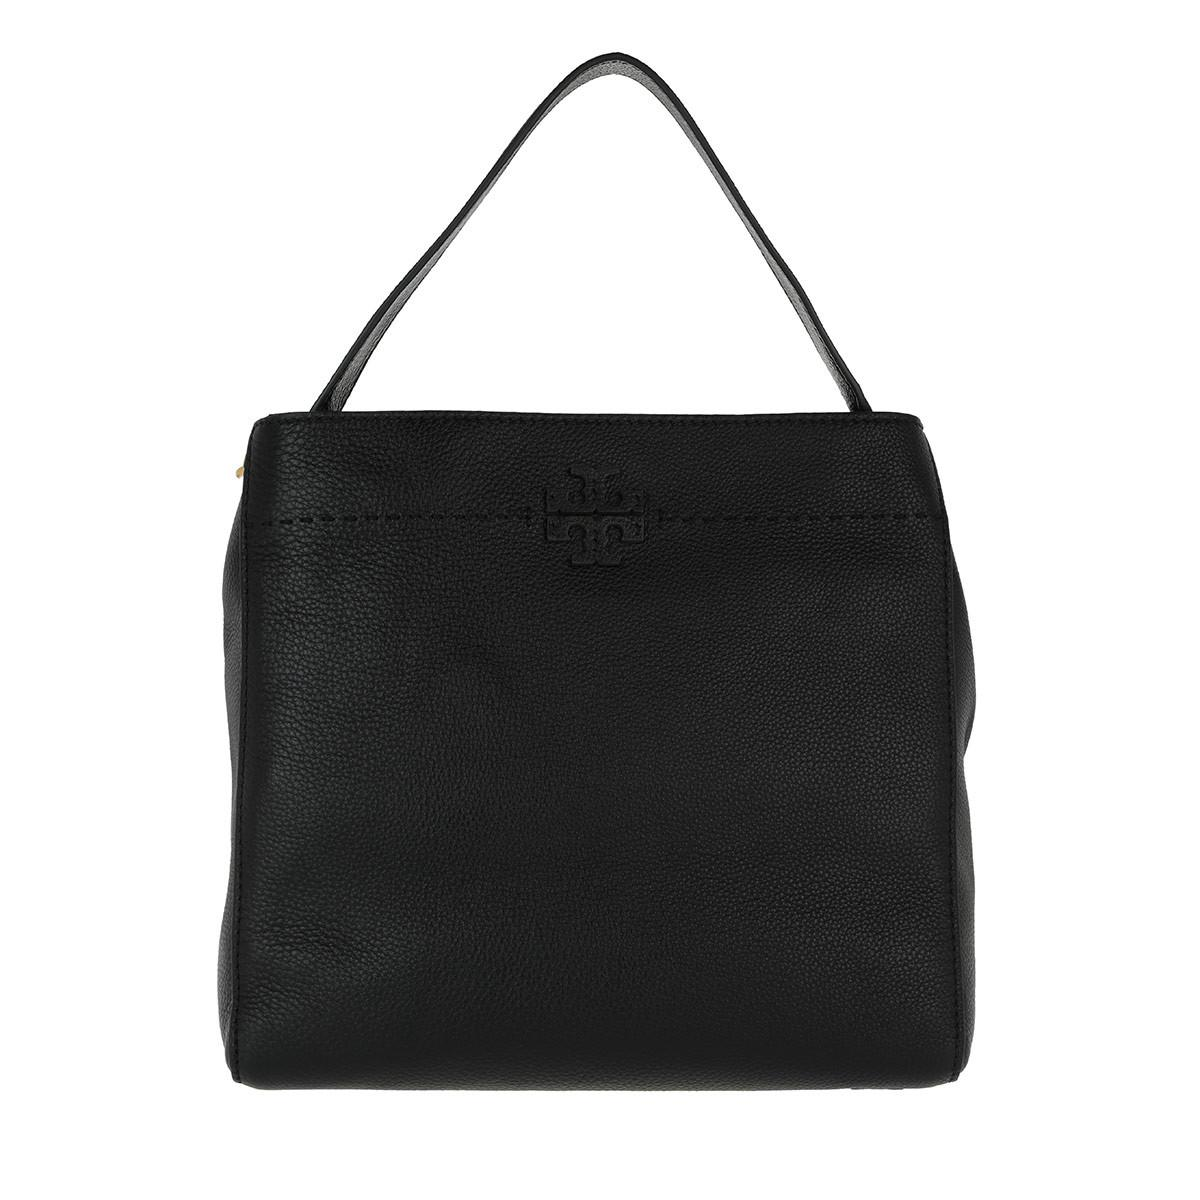 29ff081855e Tory Burch Mcgraw Hobo Bag Black in Black - Lyst